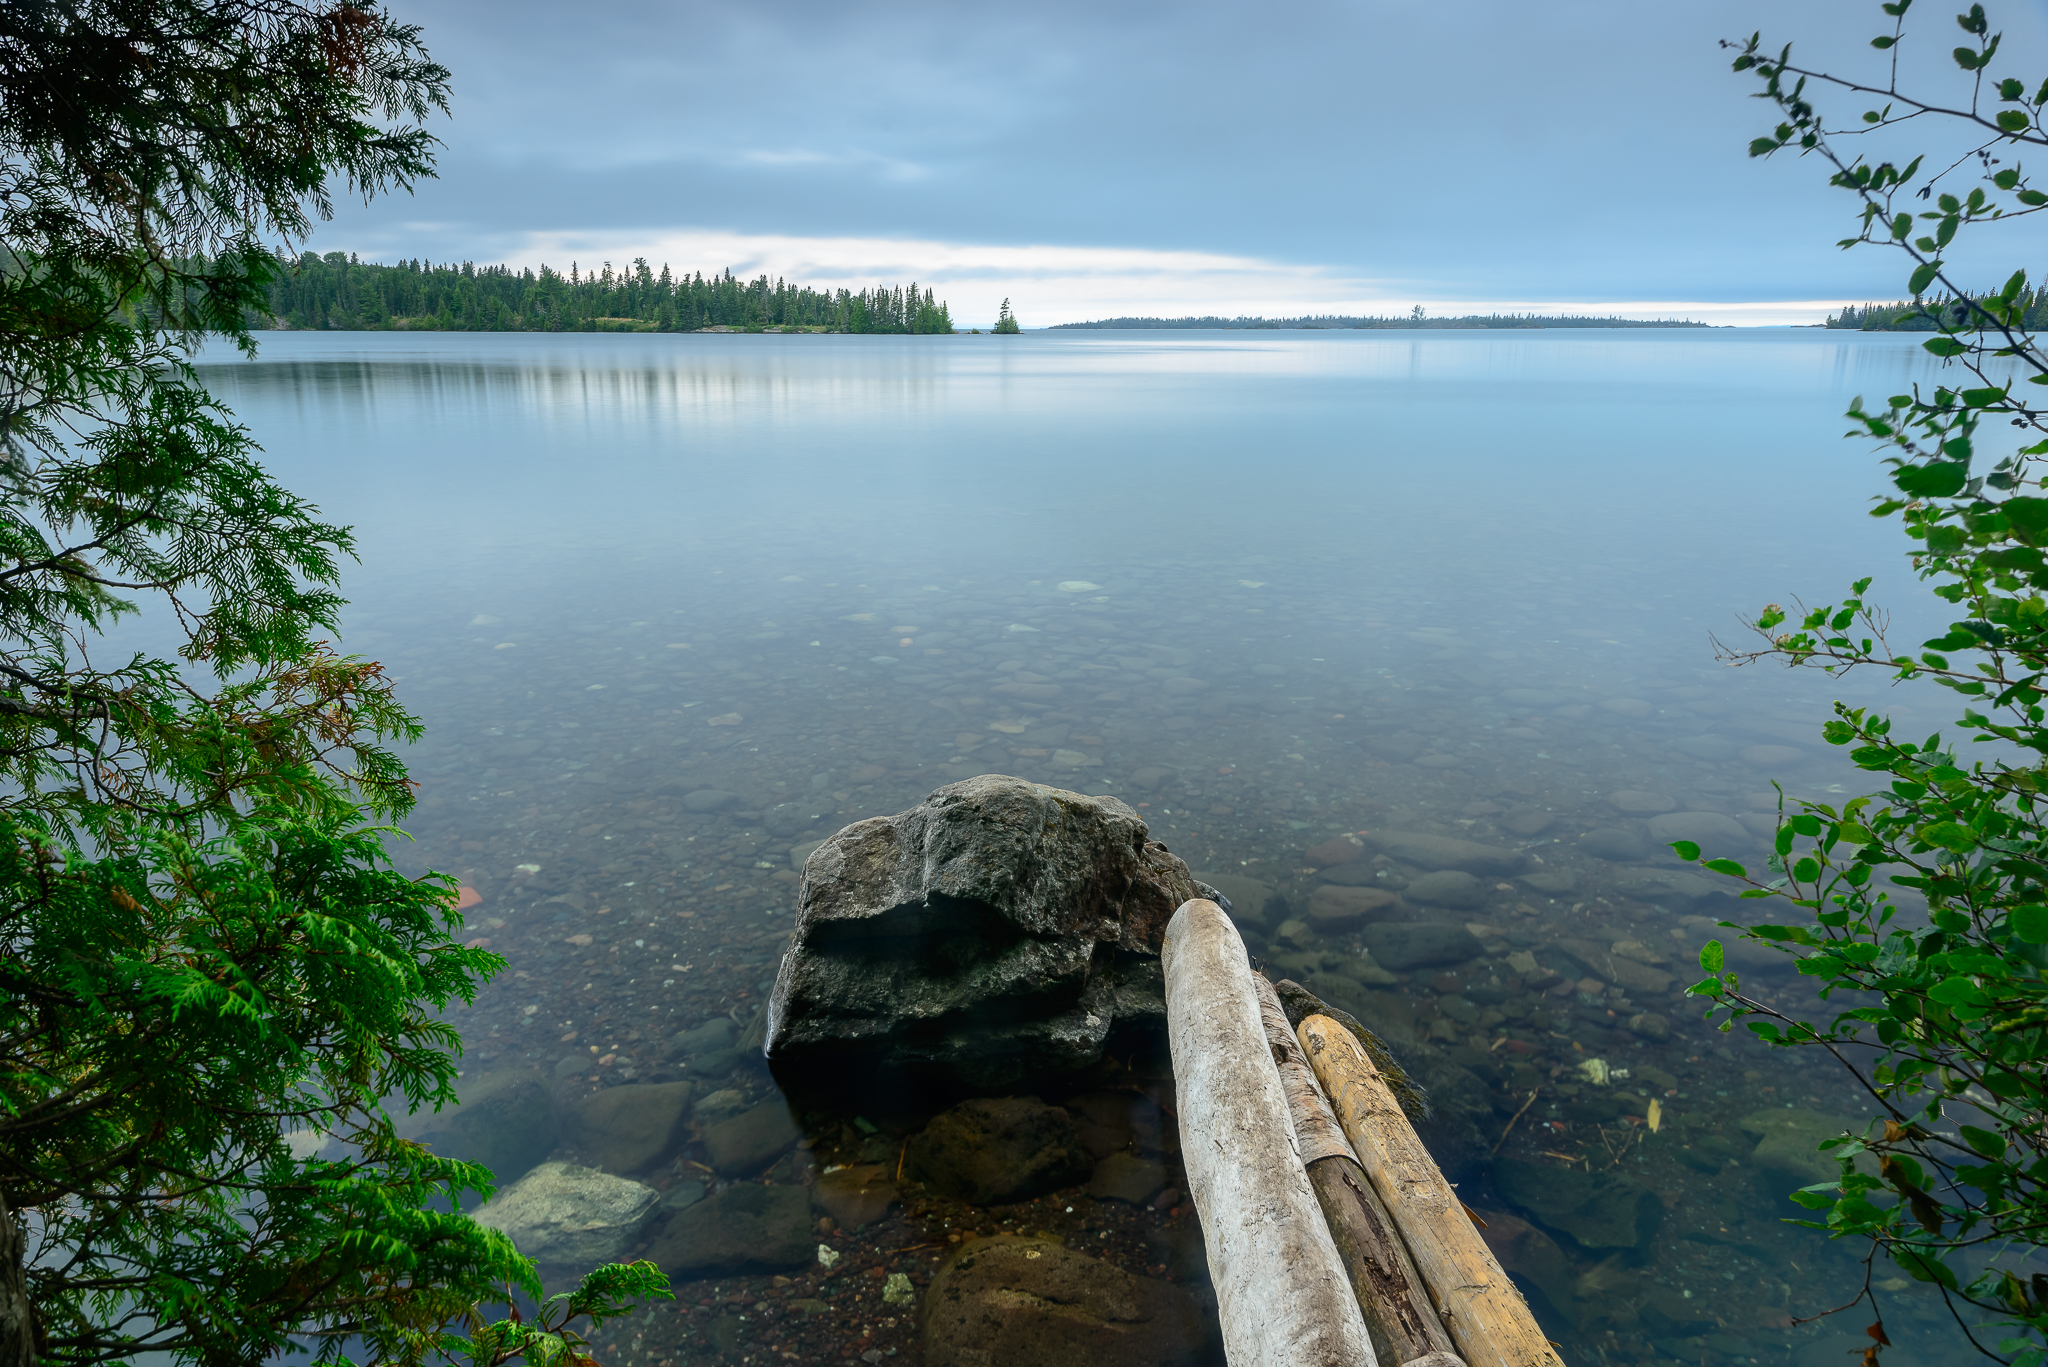 Lane Cove was the highlight of my adventure. Only the distant sound of loons broke the stillness in the air. Lane Cove Campground, Isle Royale, NP.